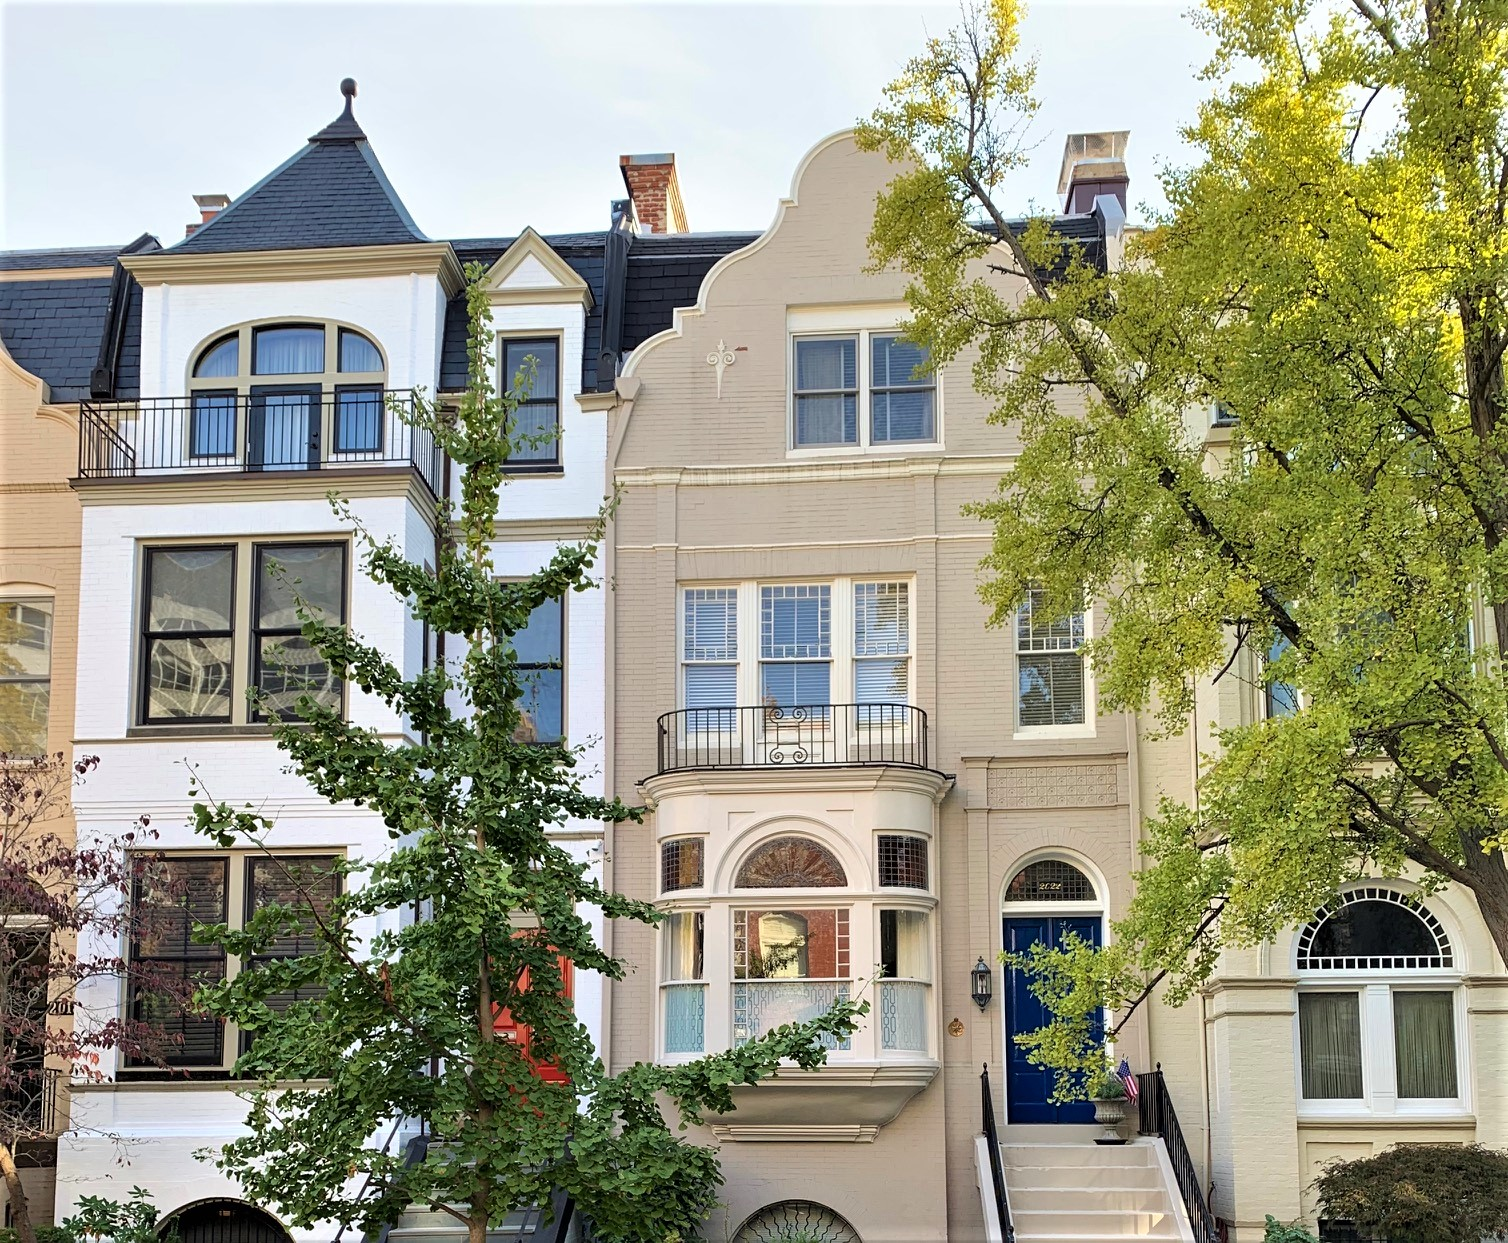 Washington, DC Townhomes For Sale. Hillyer Pl in Dupont Circle. Artyom Shmatko Luxury Real Estate Agent